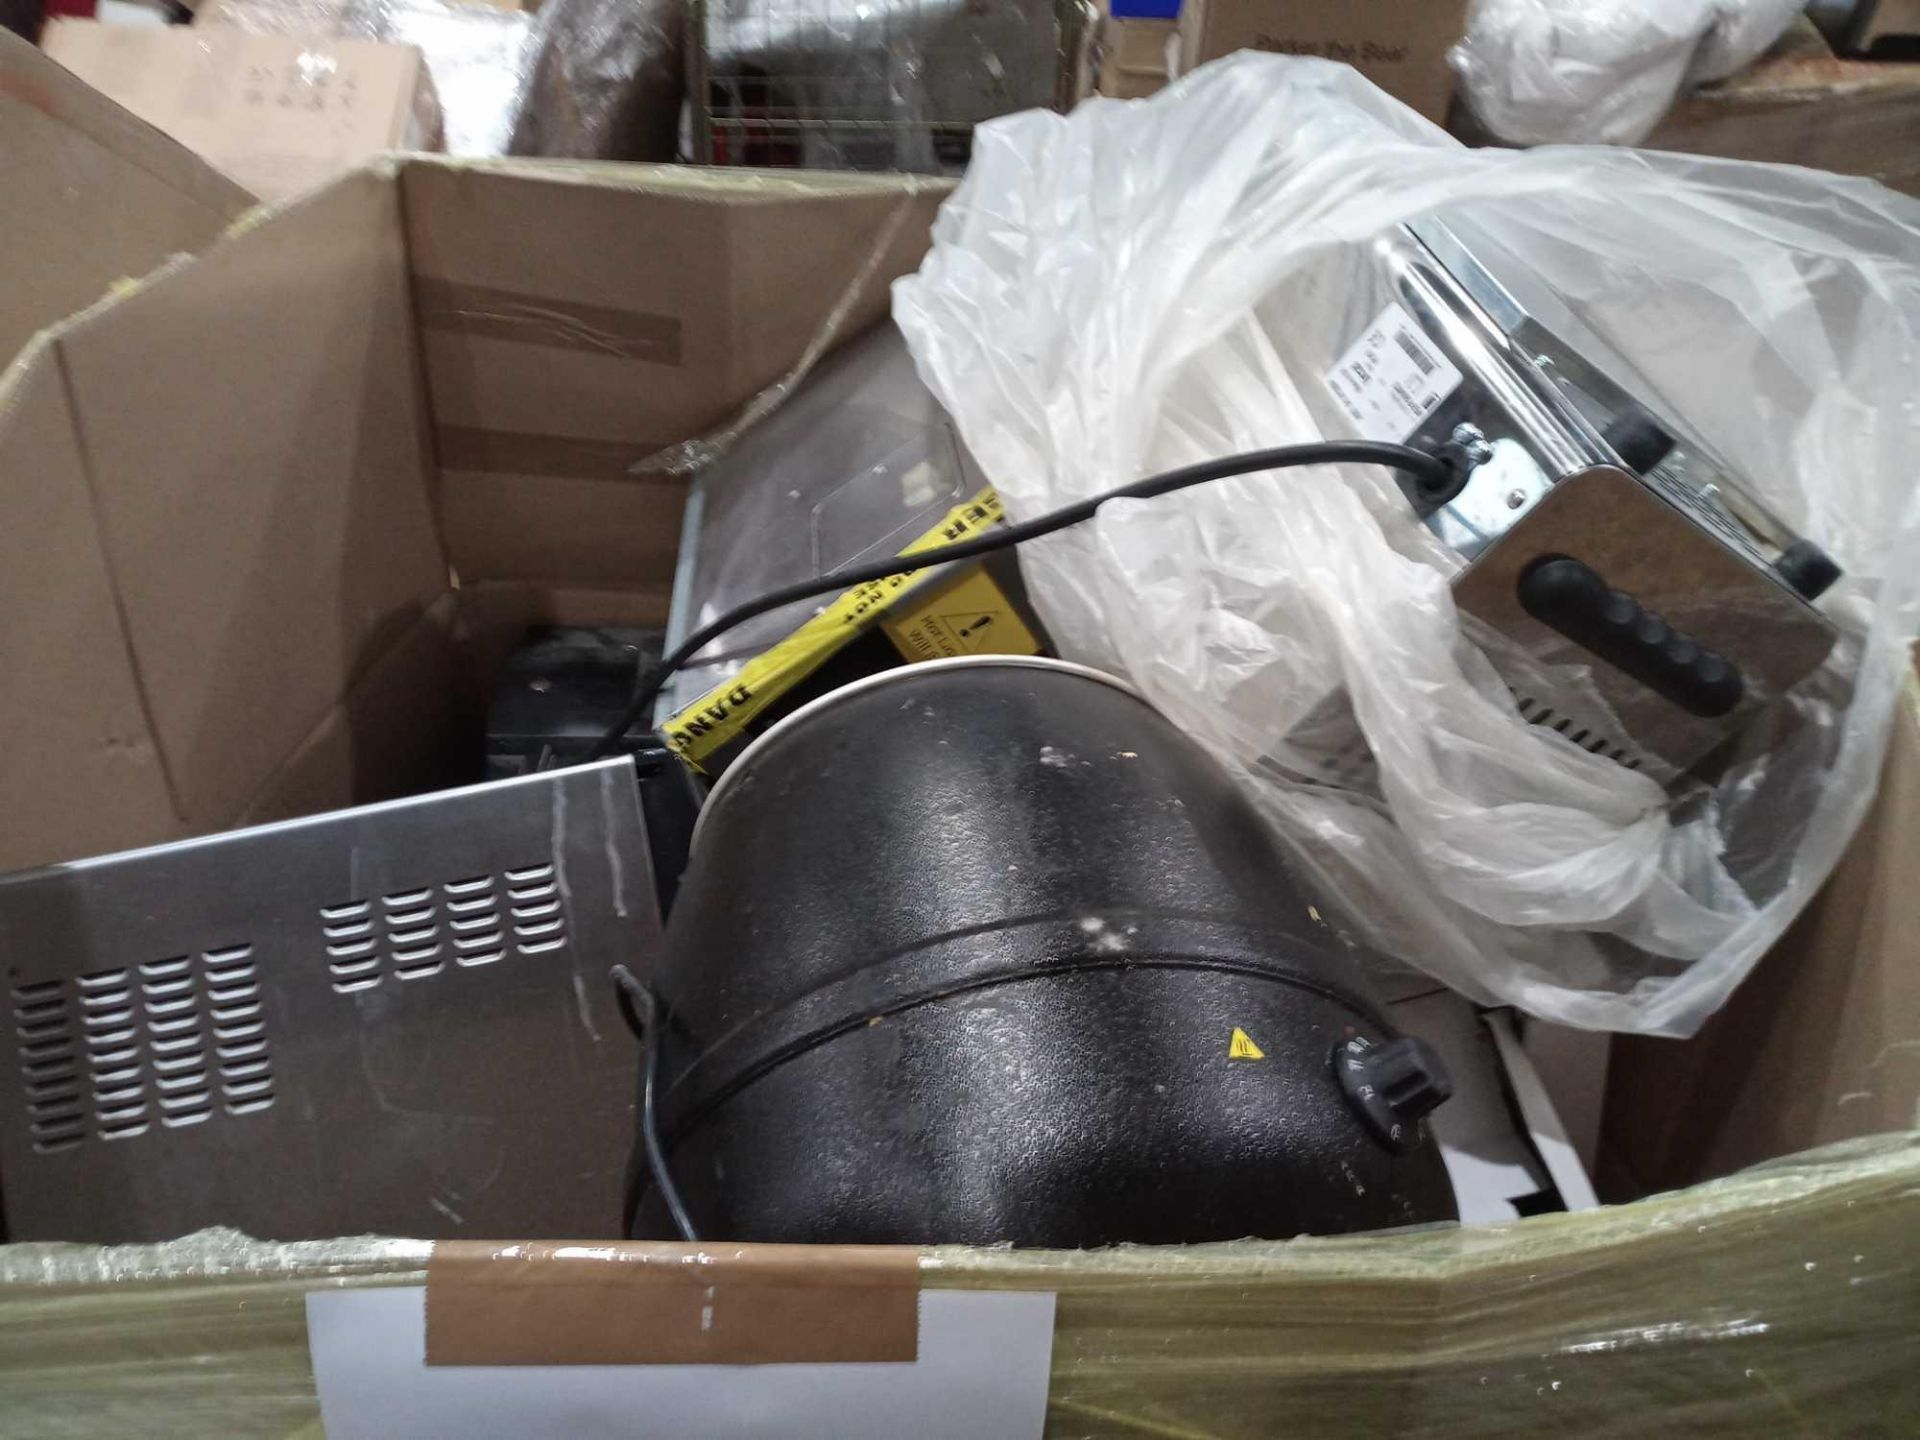 Pallet To Contain Mixed Stock To Include Microwaves Toasters, Hoovers, Unboxed And Boxed Lighting, W